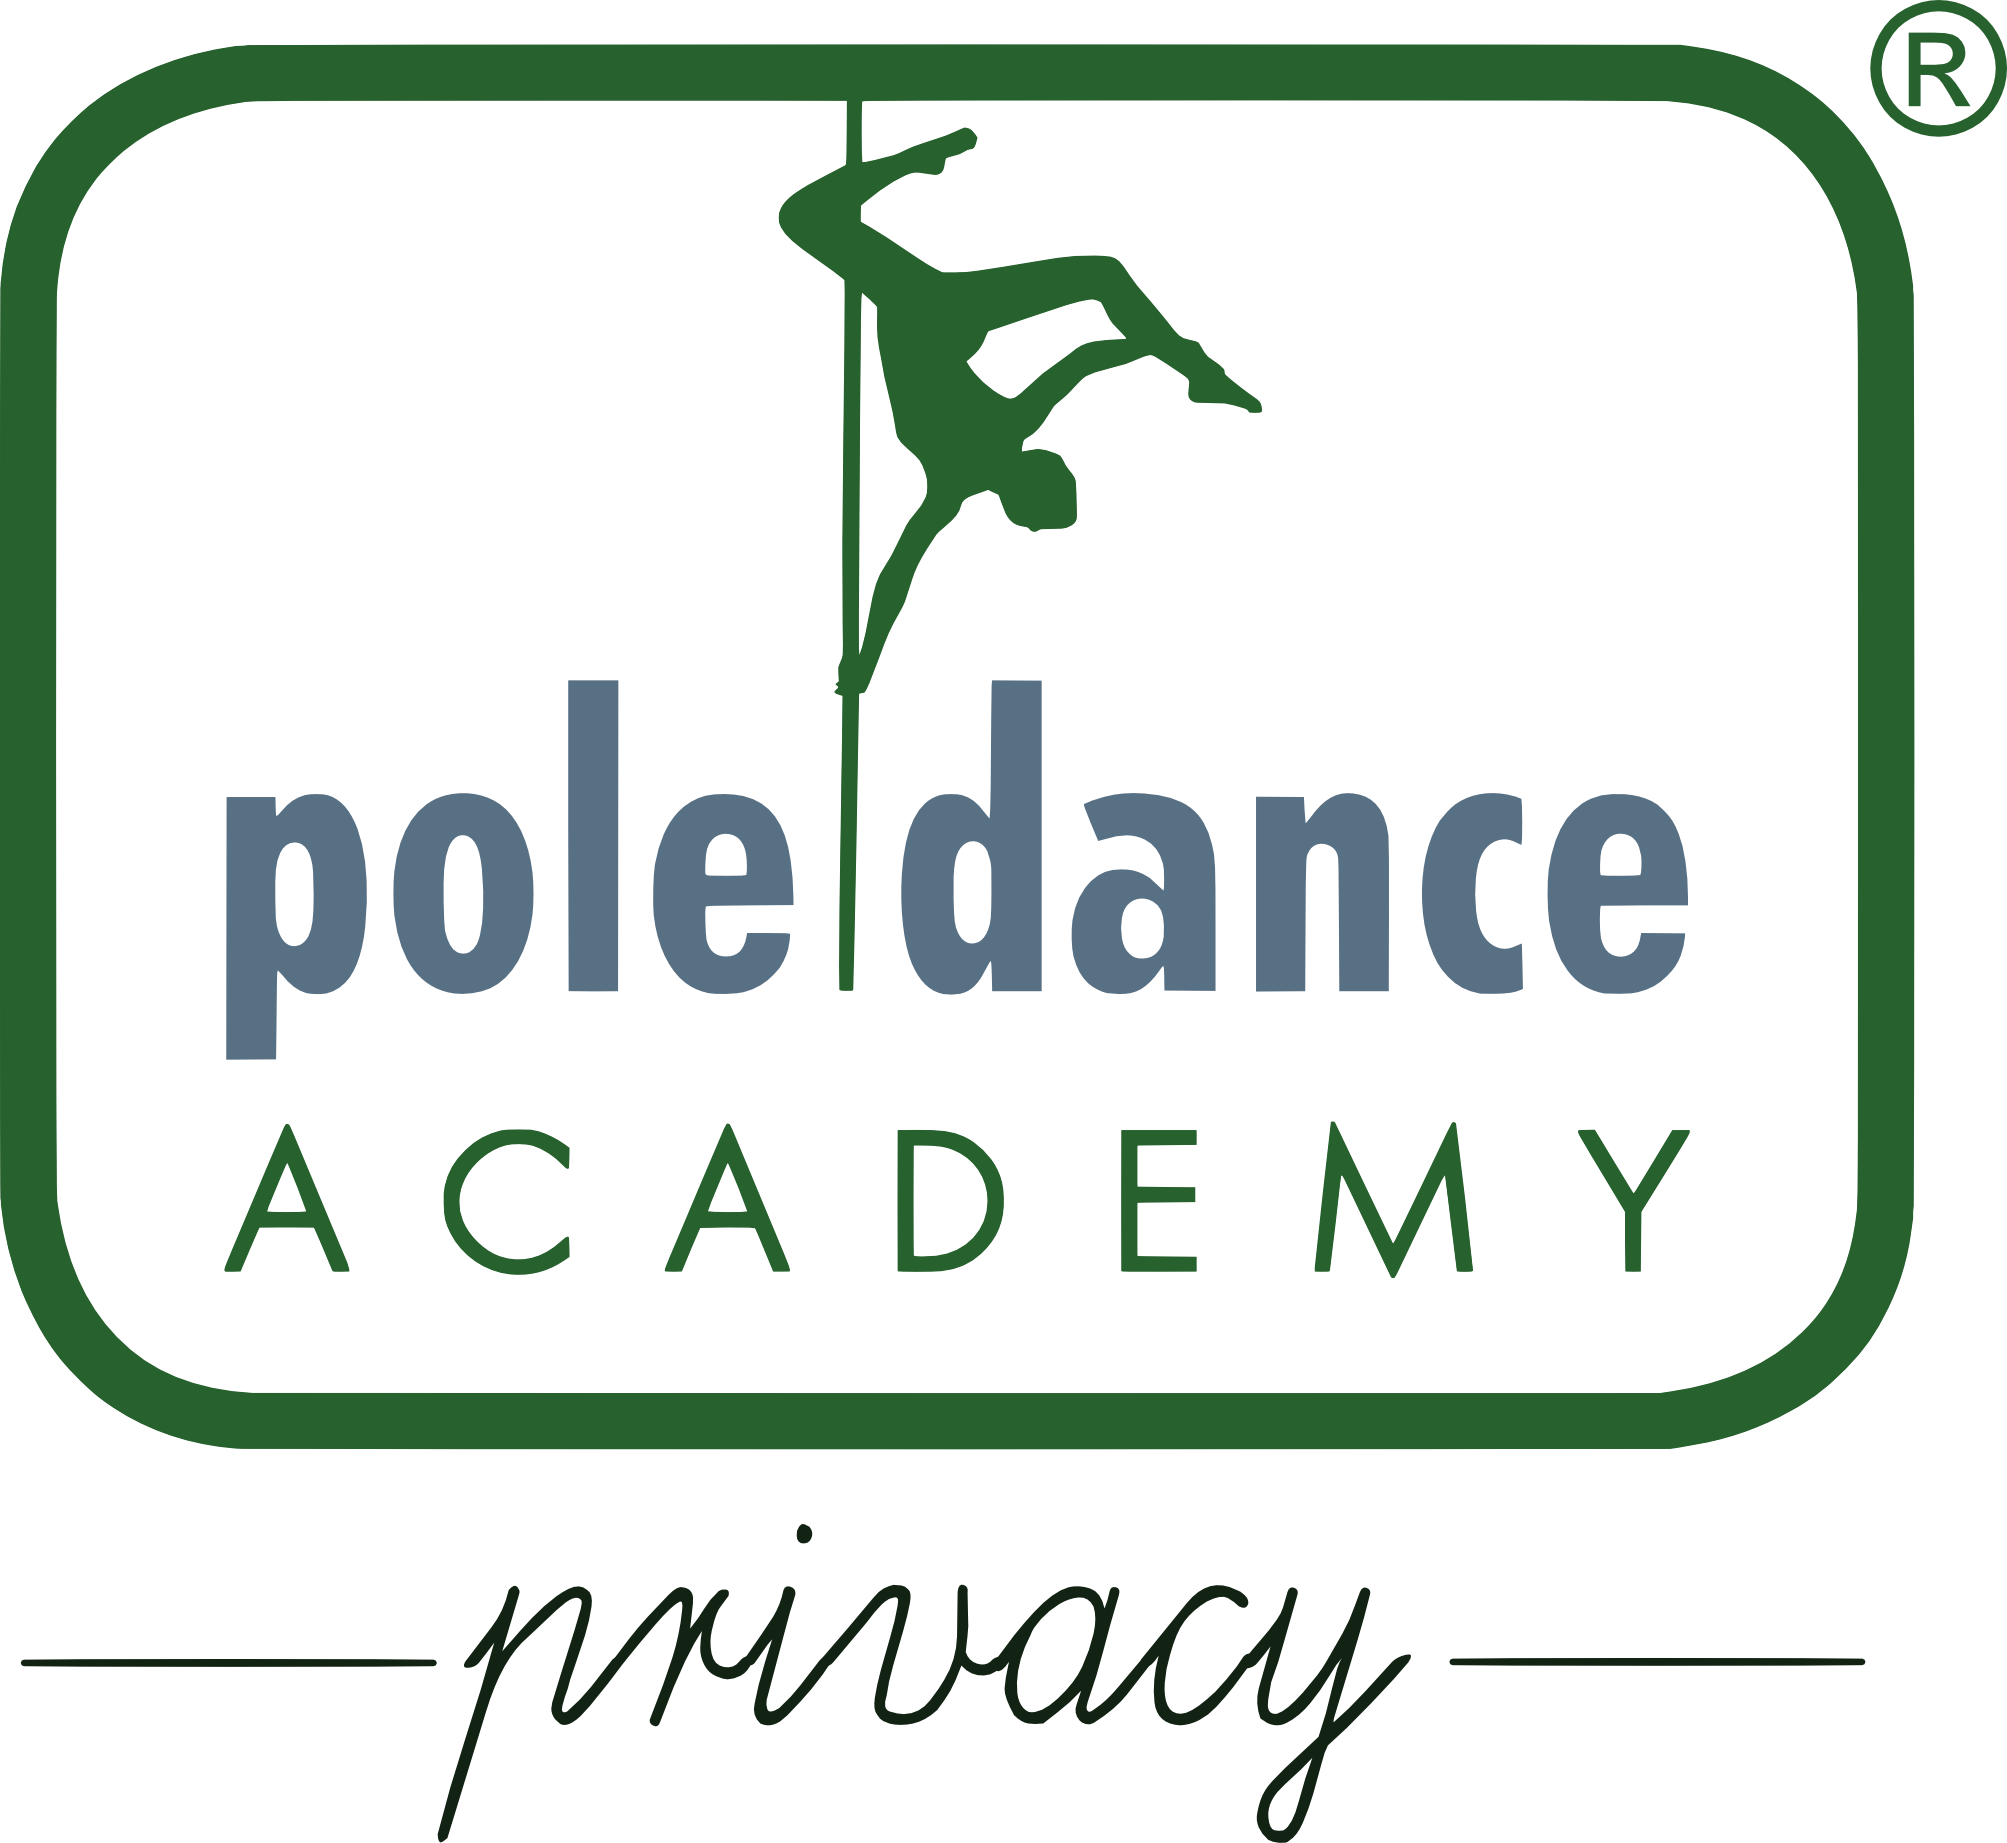 Pole Dance Academy privacy